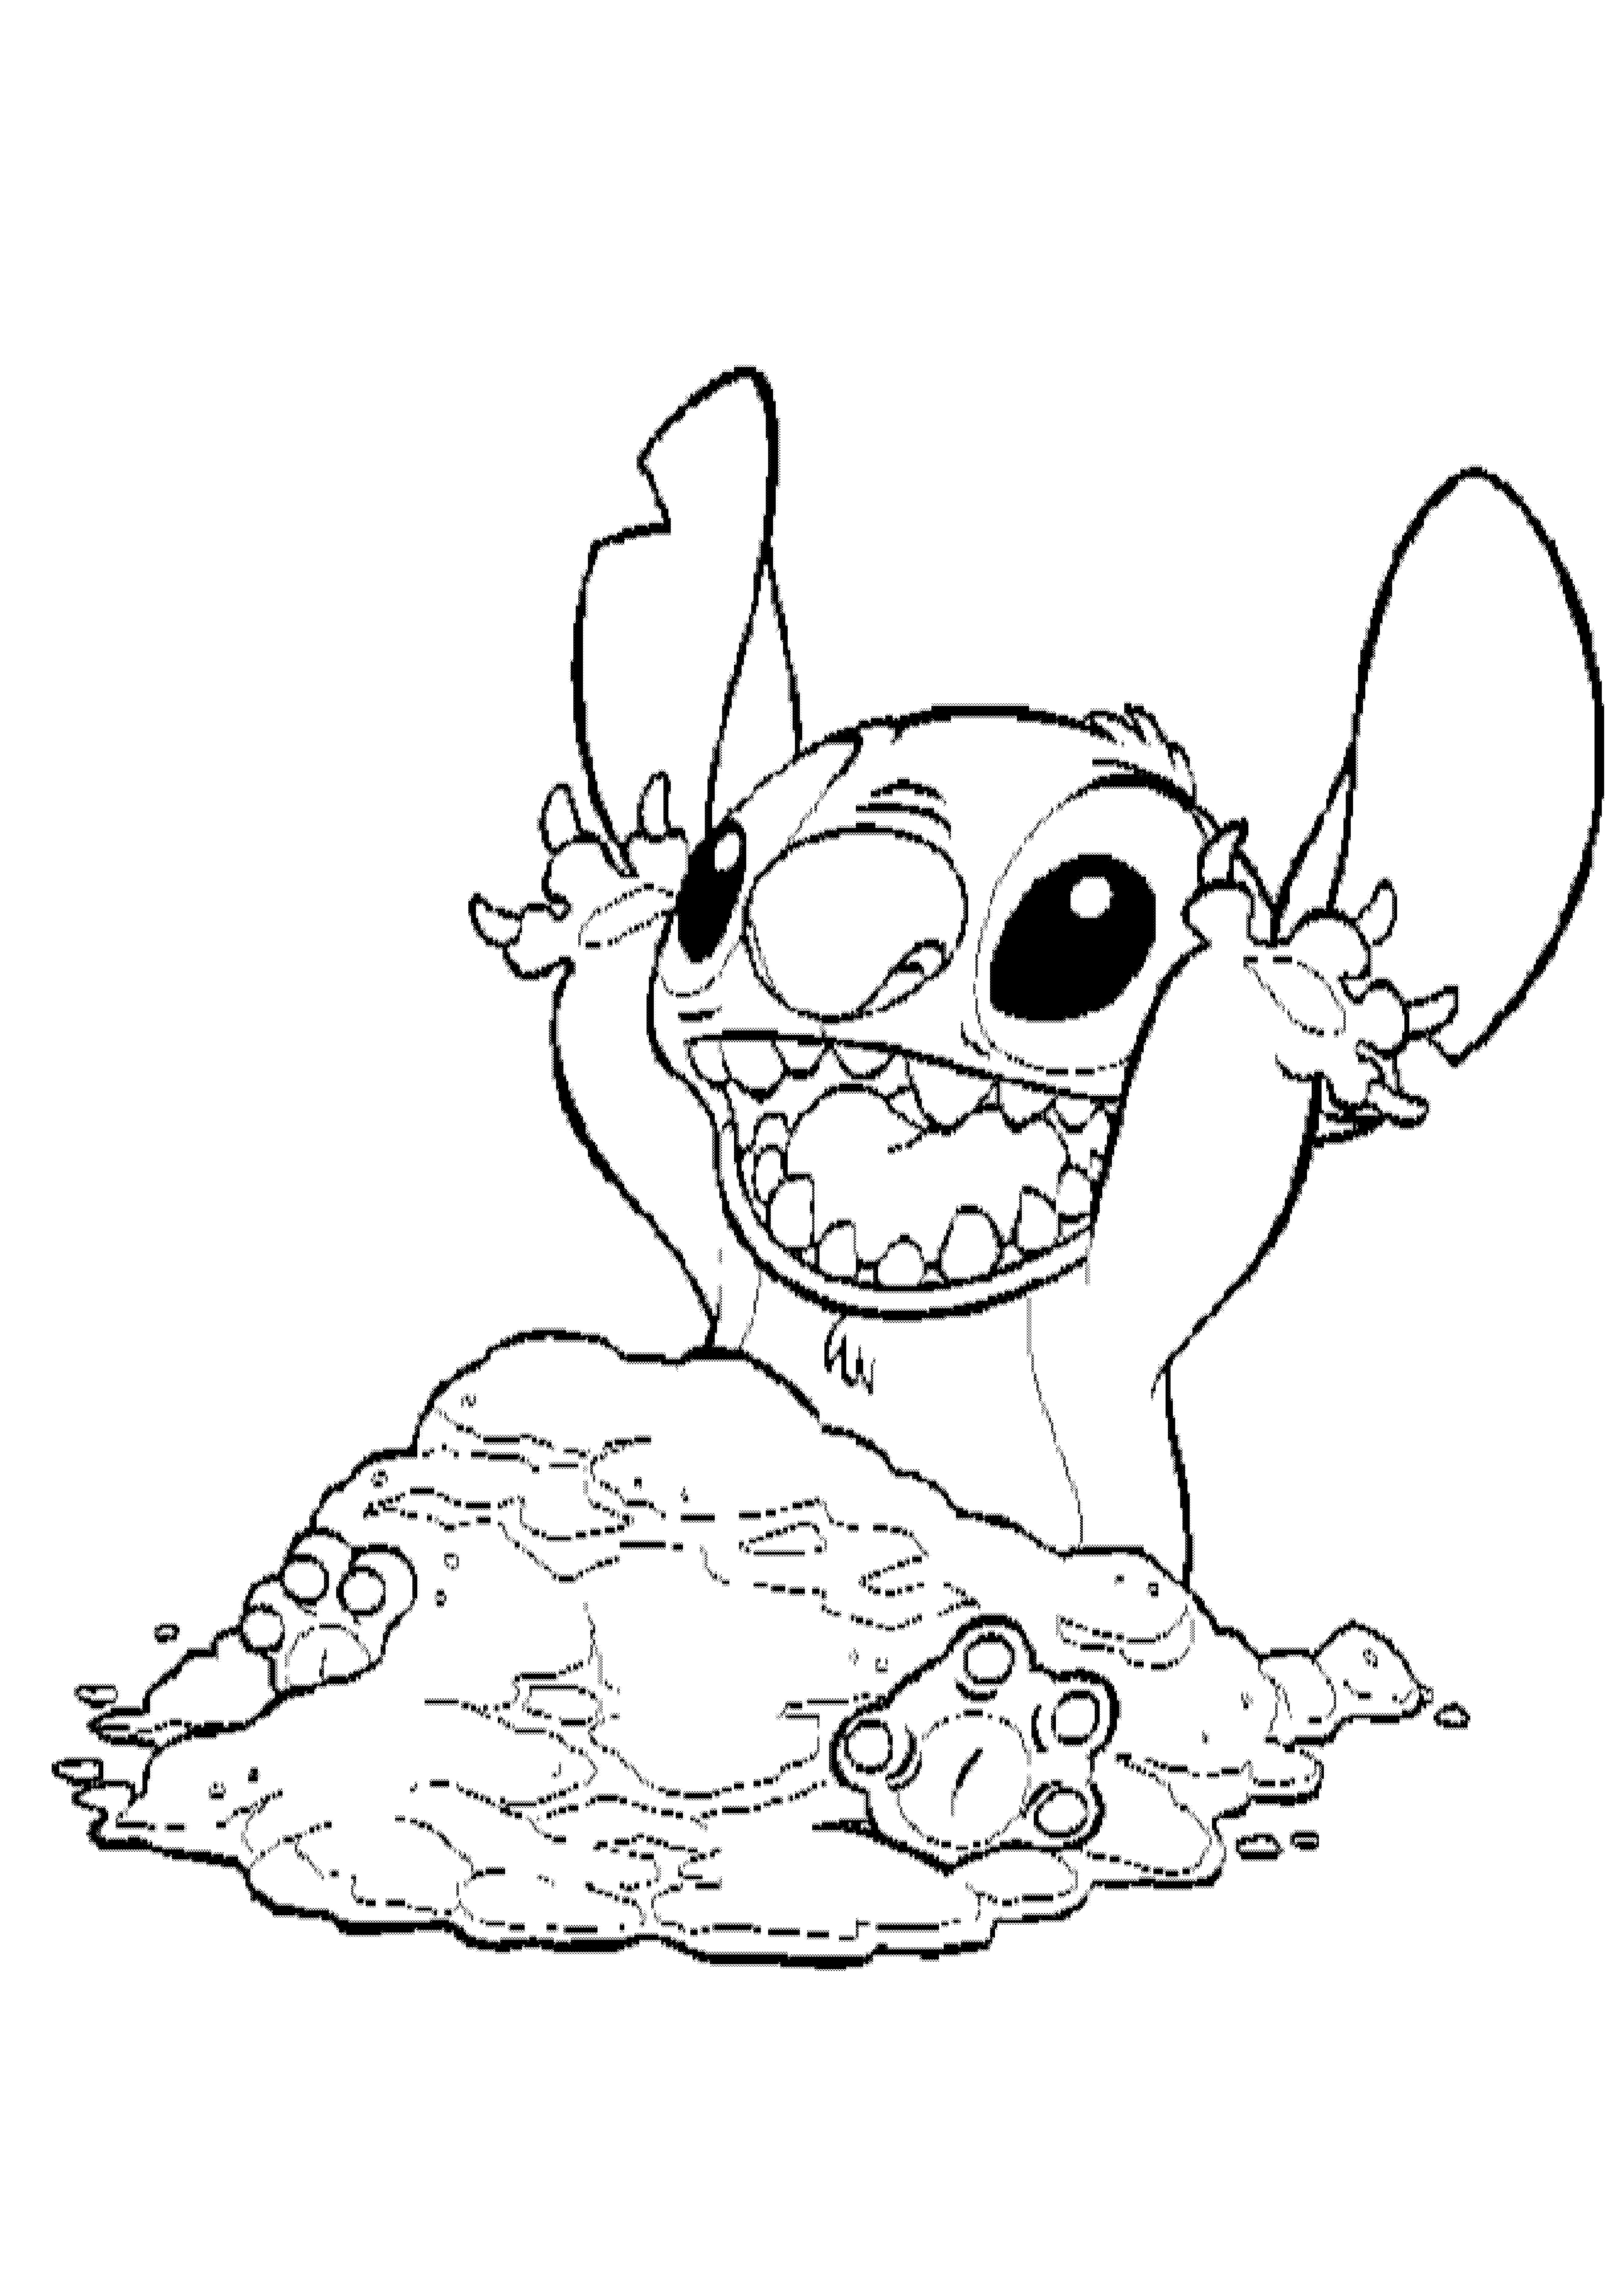 coloring images lilo and stitch coloring pages k5 worksheets images coloring